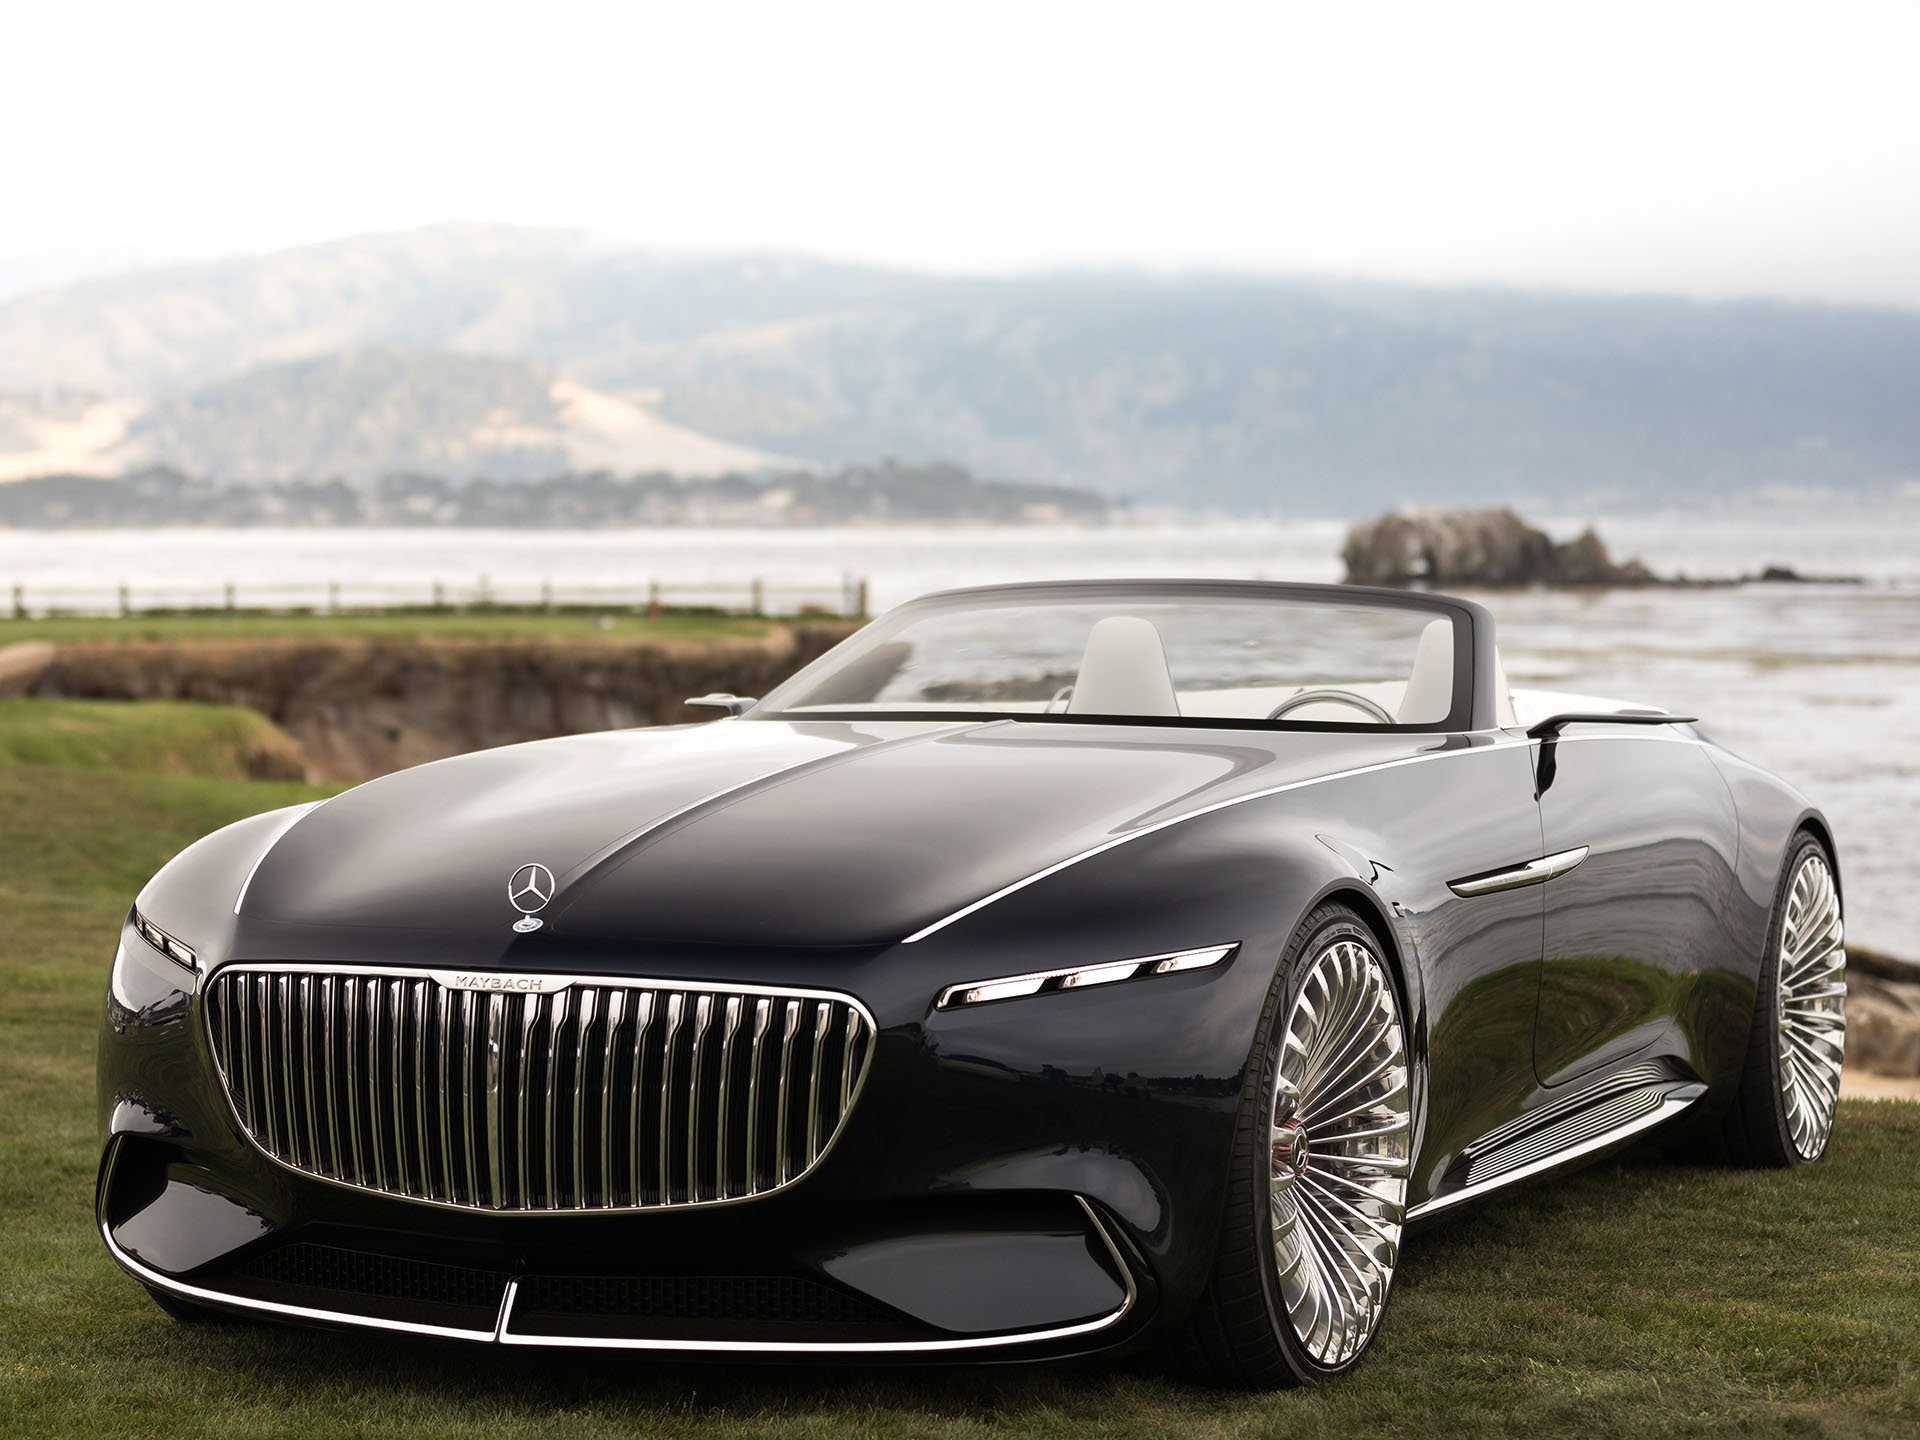 2017 monterey the vision mercedes maybach 6 cabriolet for Mercedes benz maybach 6 price